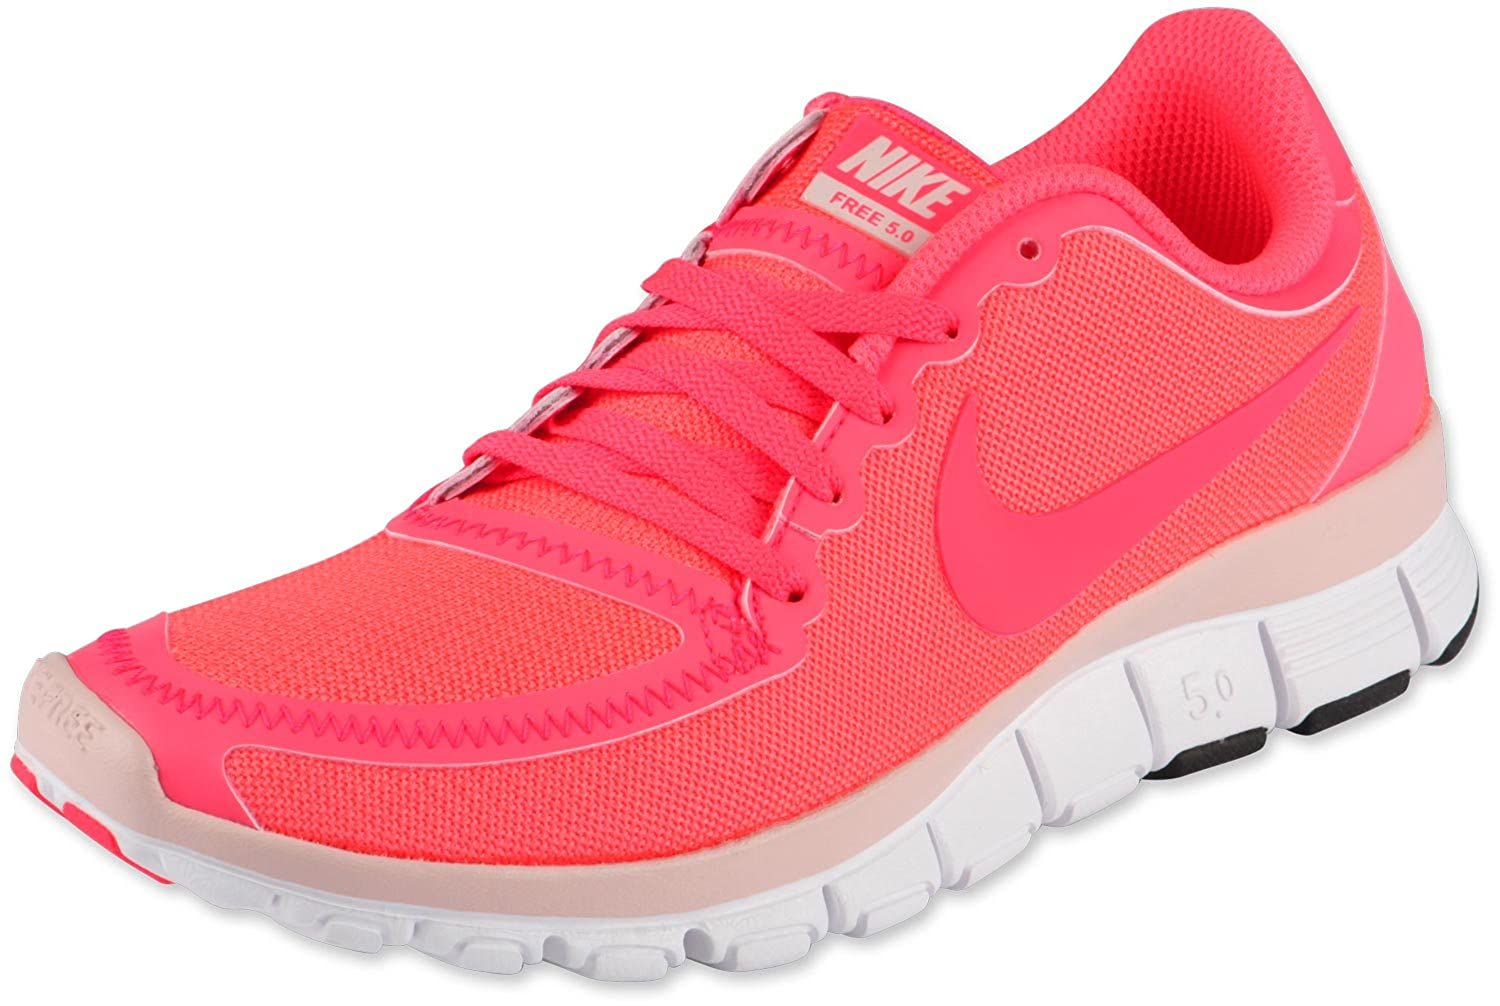 sports shoes cae20 14034 Amazon.com  New Womens Nike Free 5.0 V4 Running Shoes 511281-606 Hot Punch  Pink Sz 10  Running